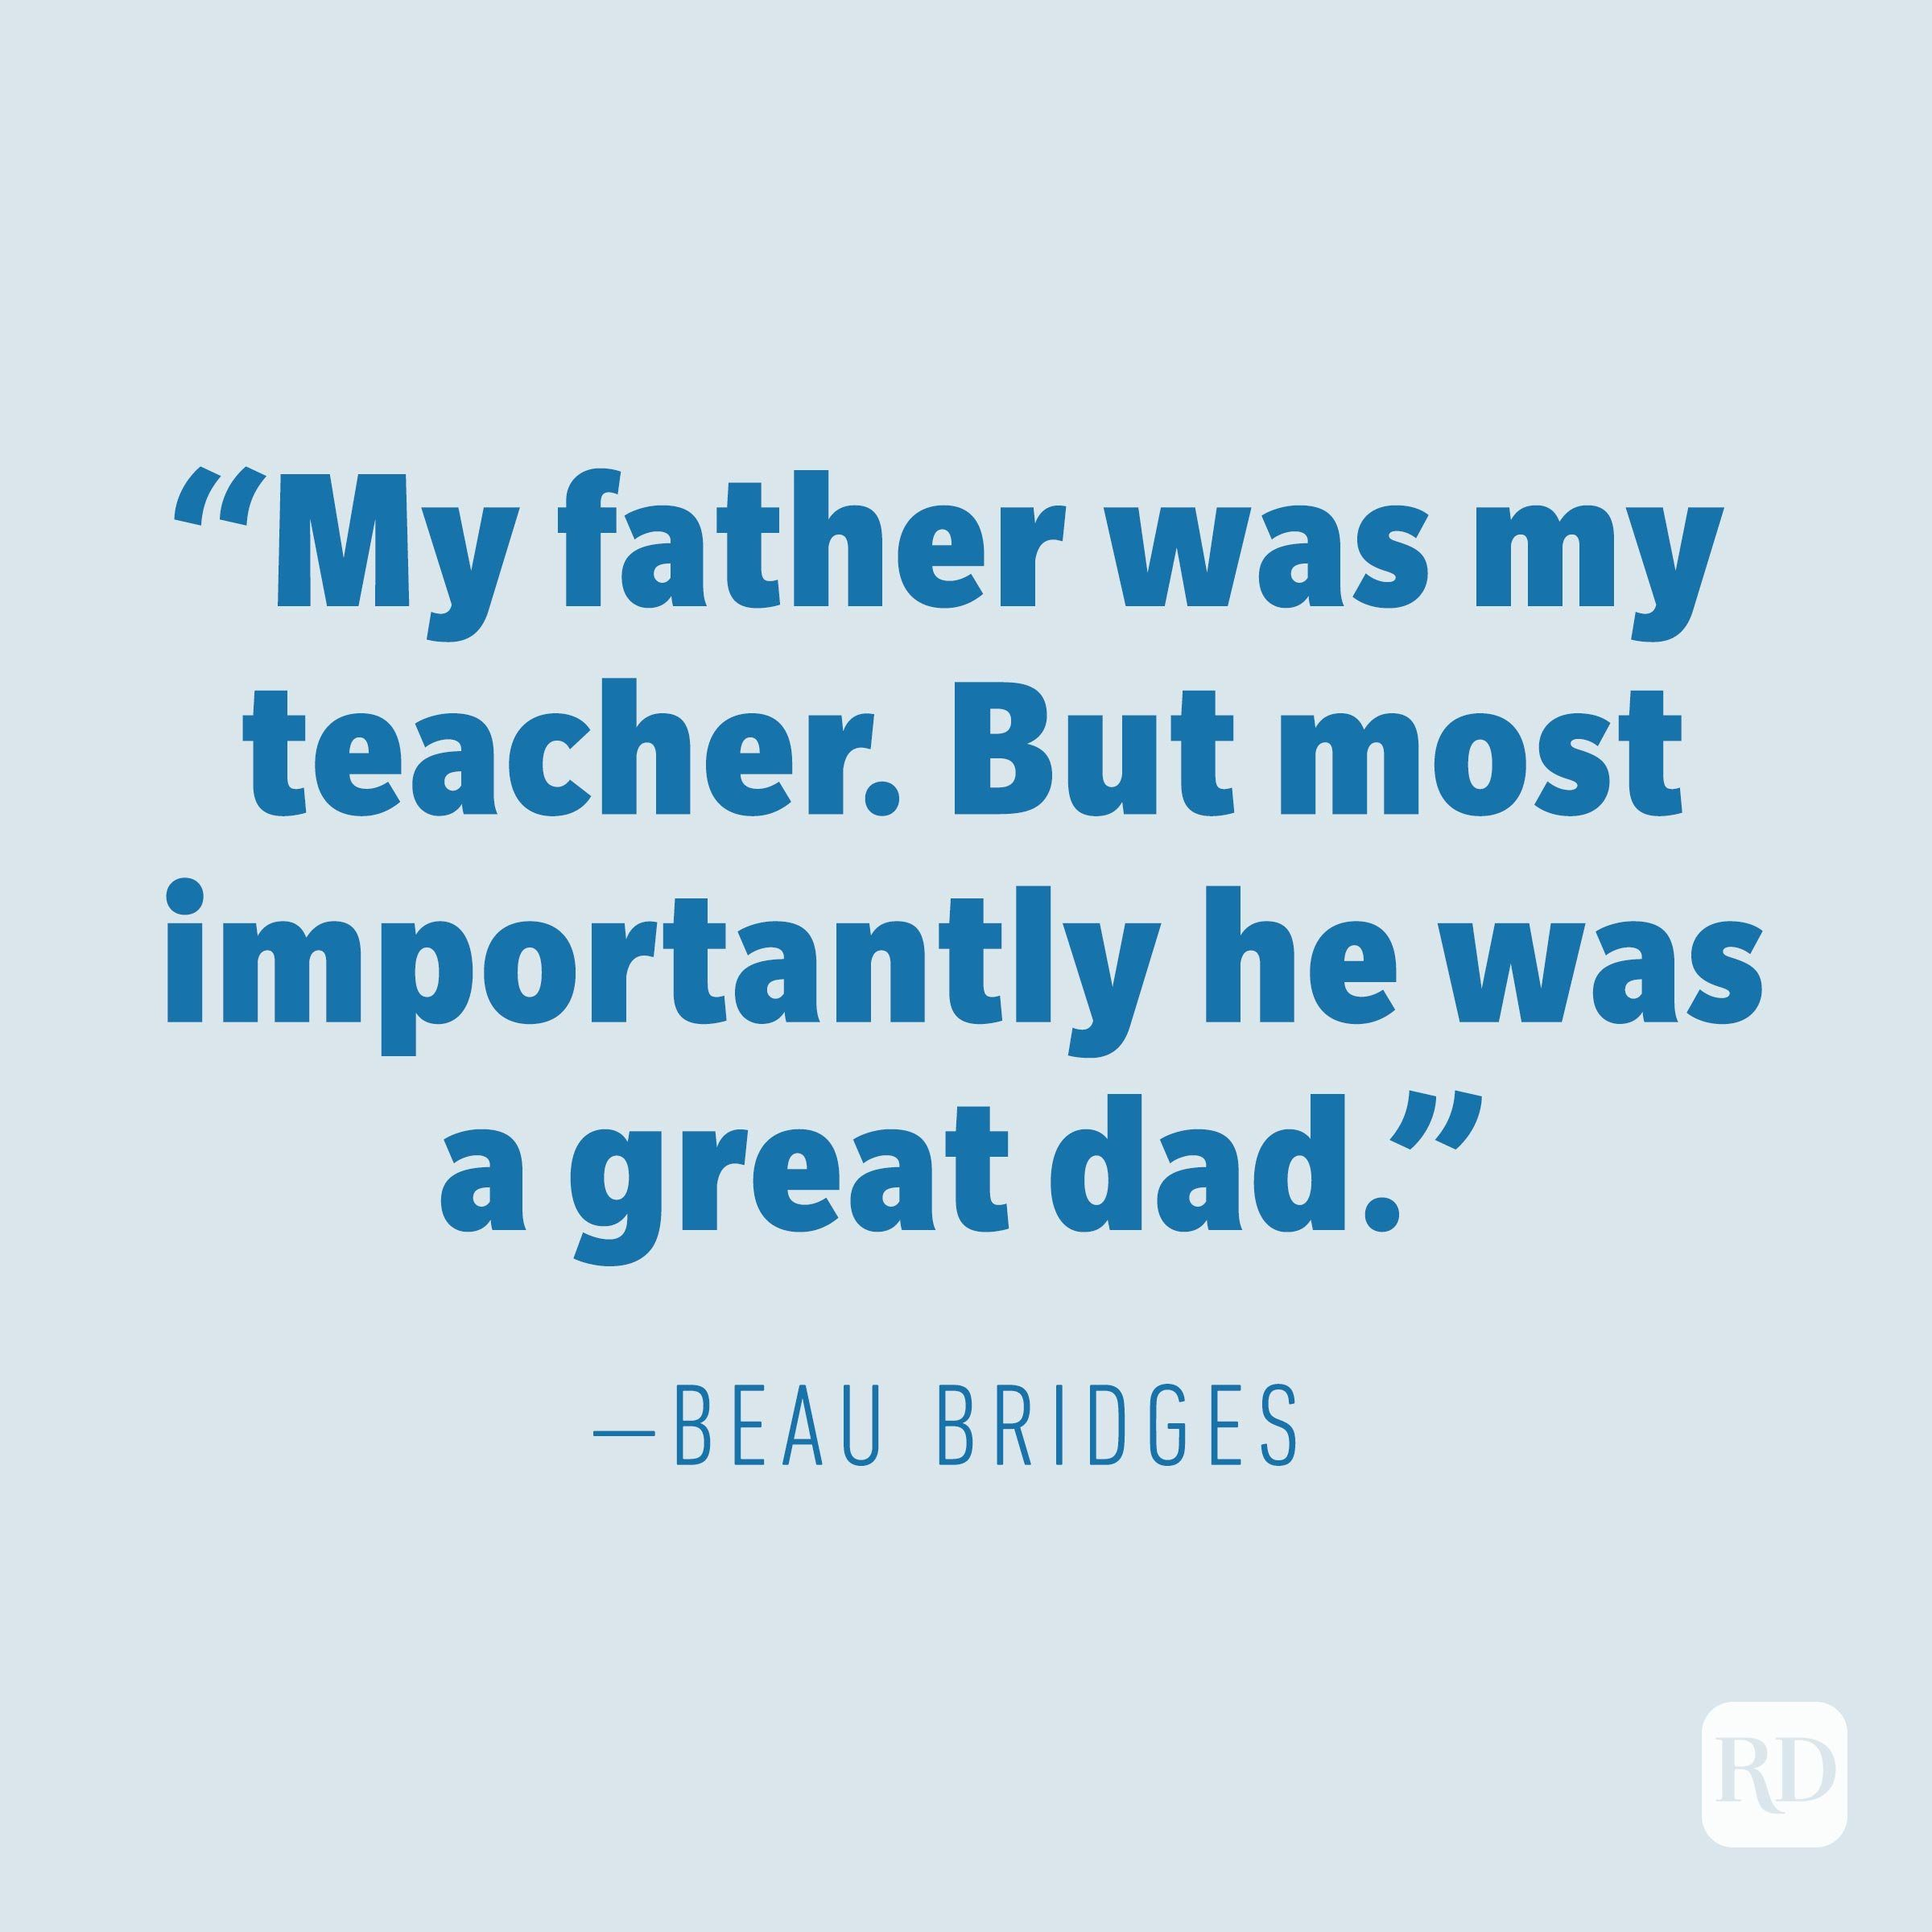 Beau Bridges quote